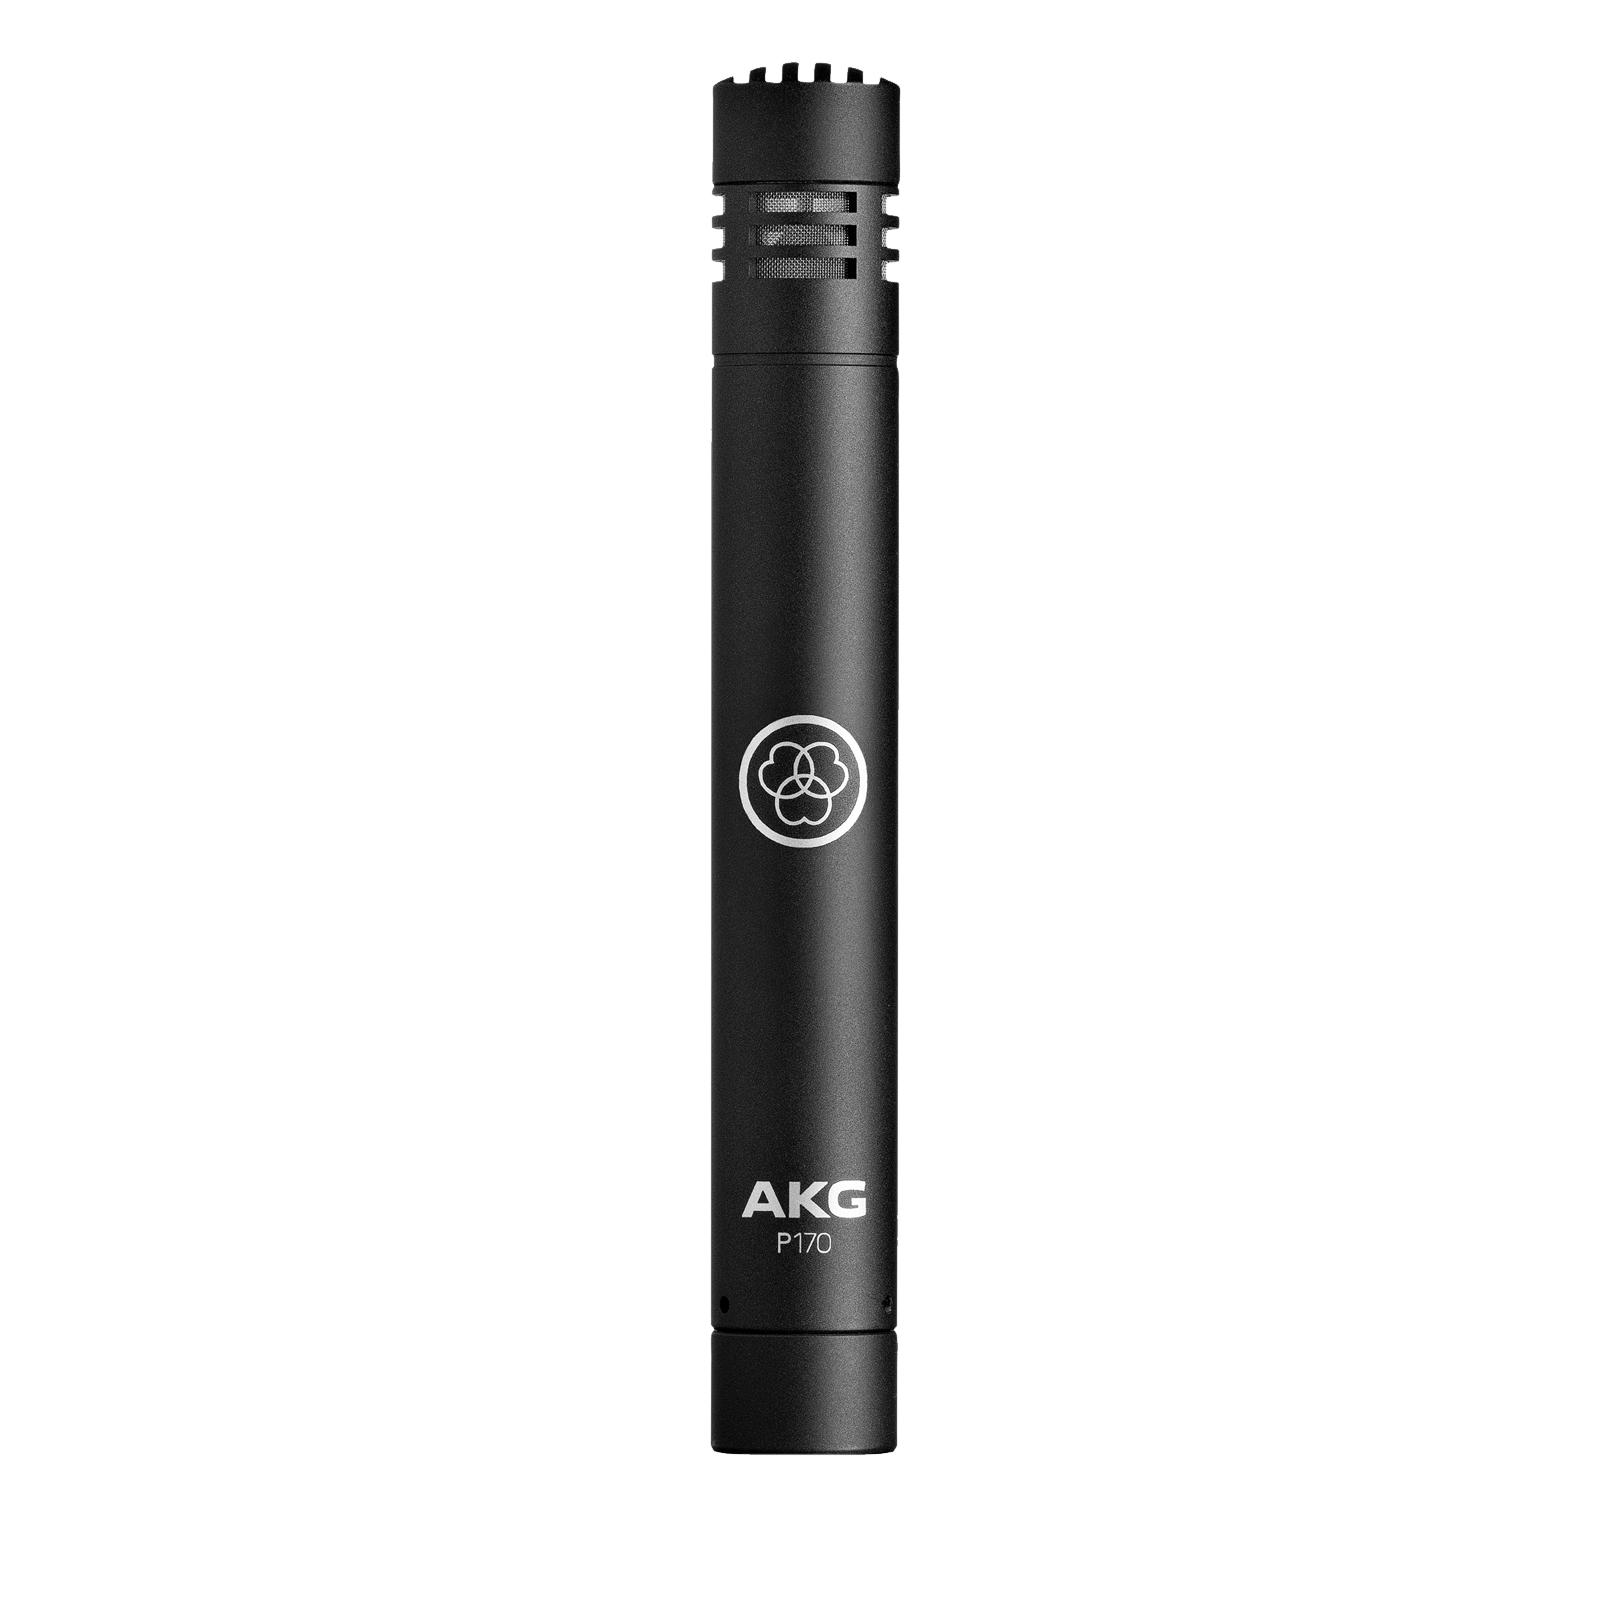 P170 - Black - High-performance instrument microphone - Hero